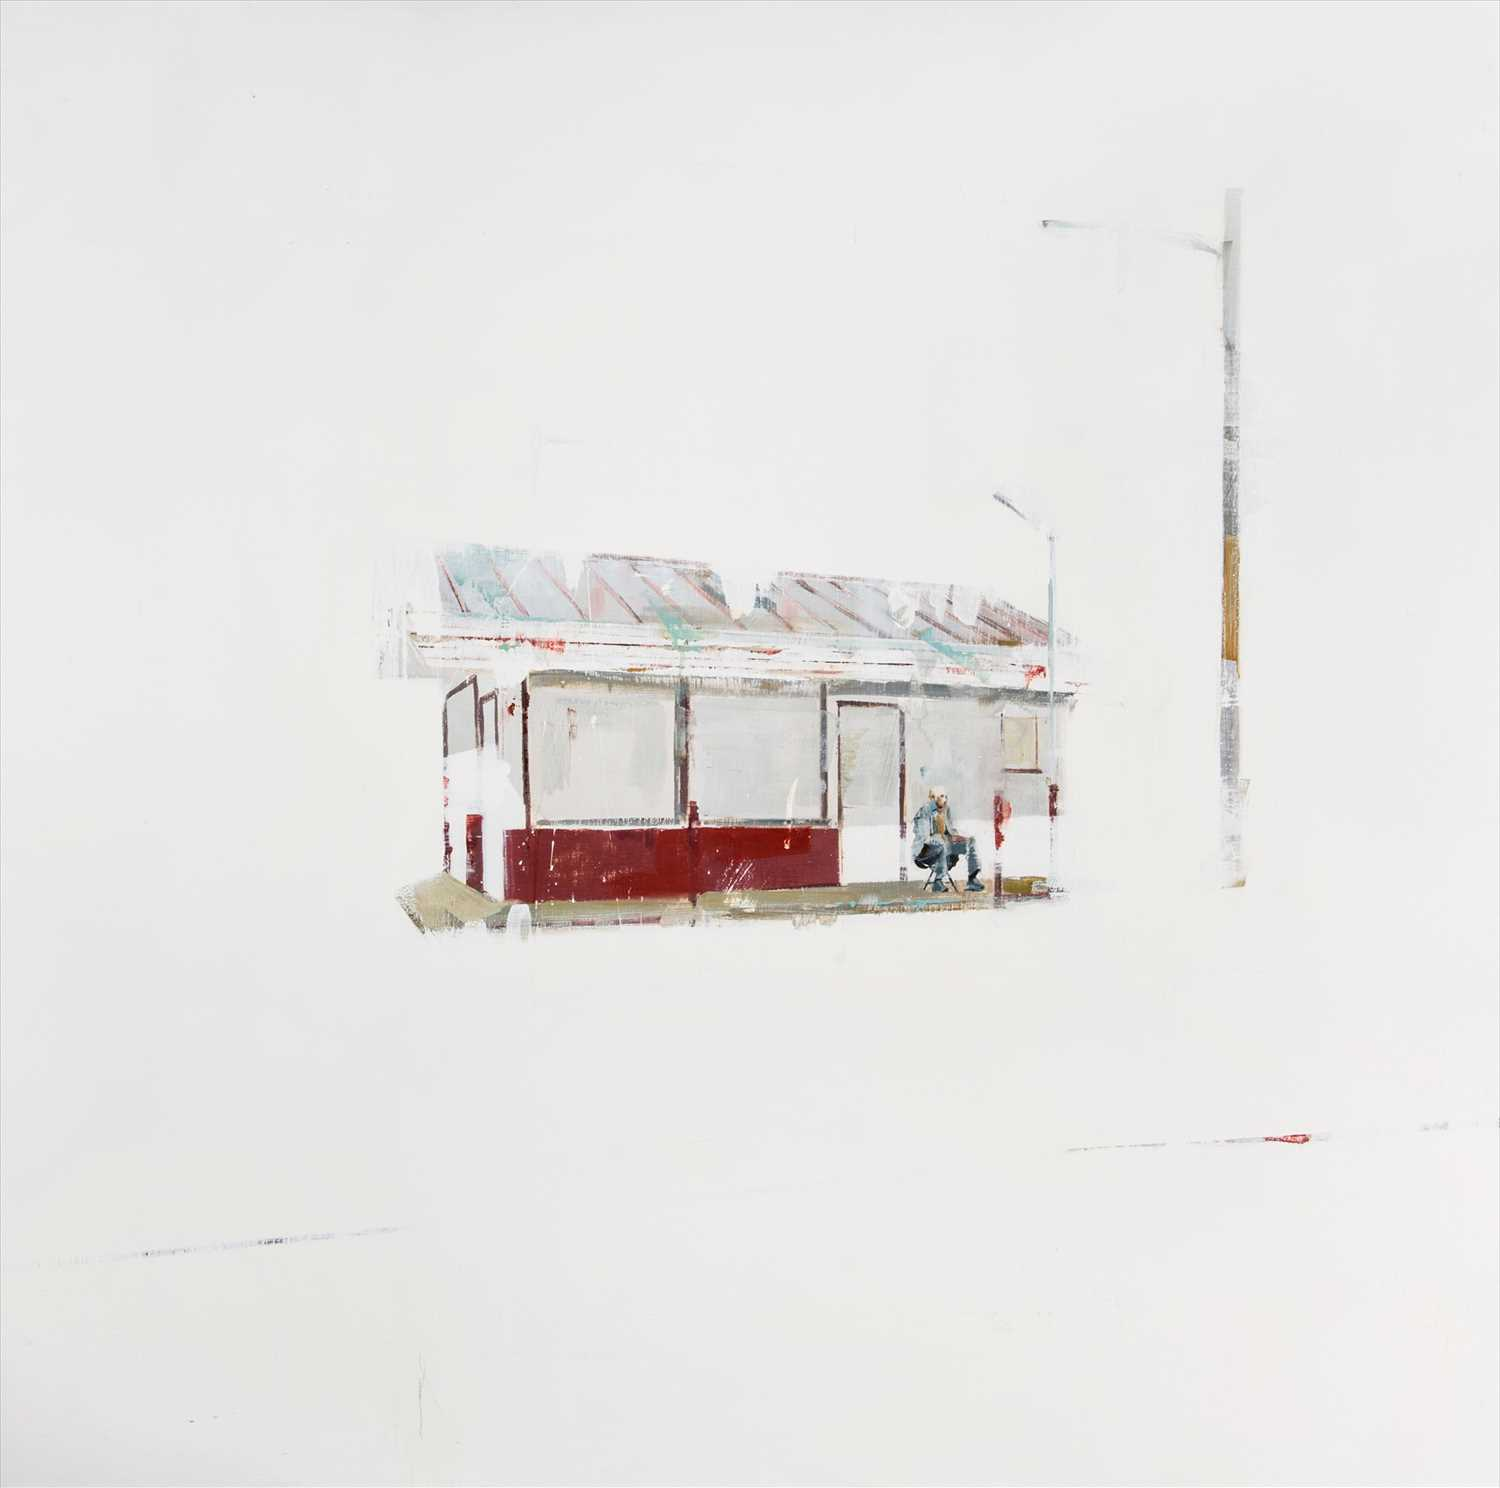 Lot 10 - Brett Amory (American b.1975), 'Waiting #71', 2010